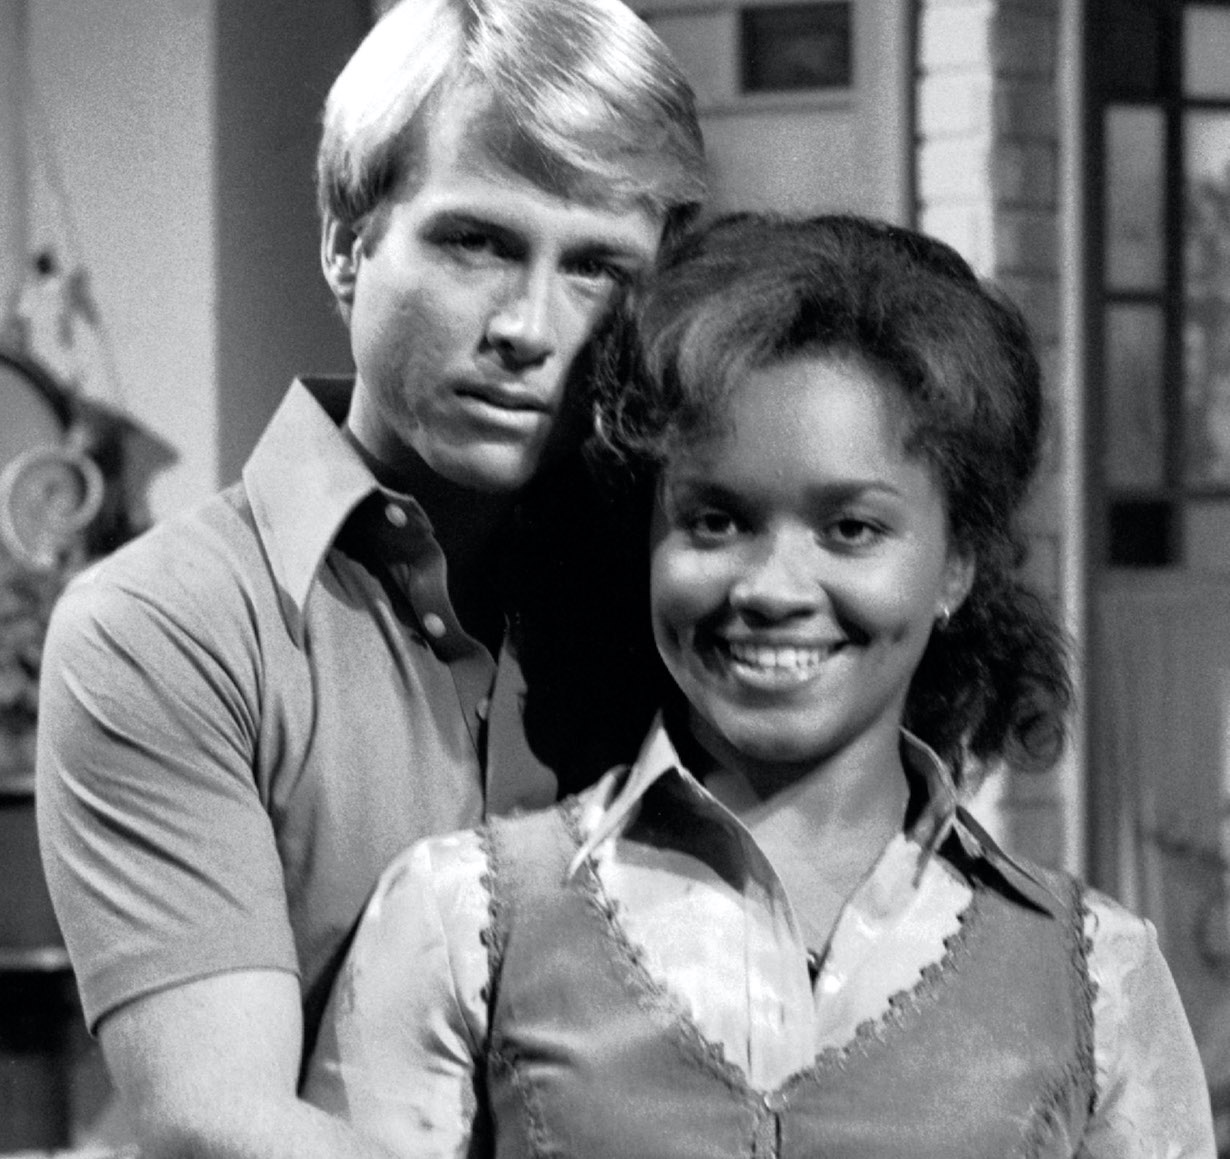 DAYS OF OUR LIVES, David Guthrie, Tina Andrews valerie grant interracial couple